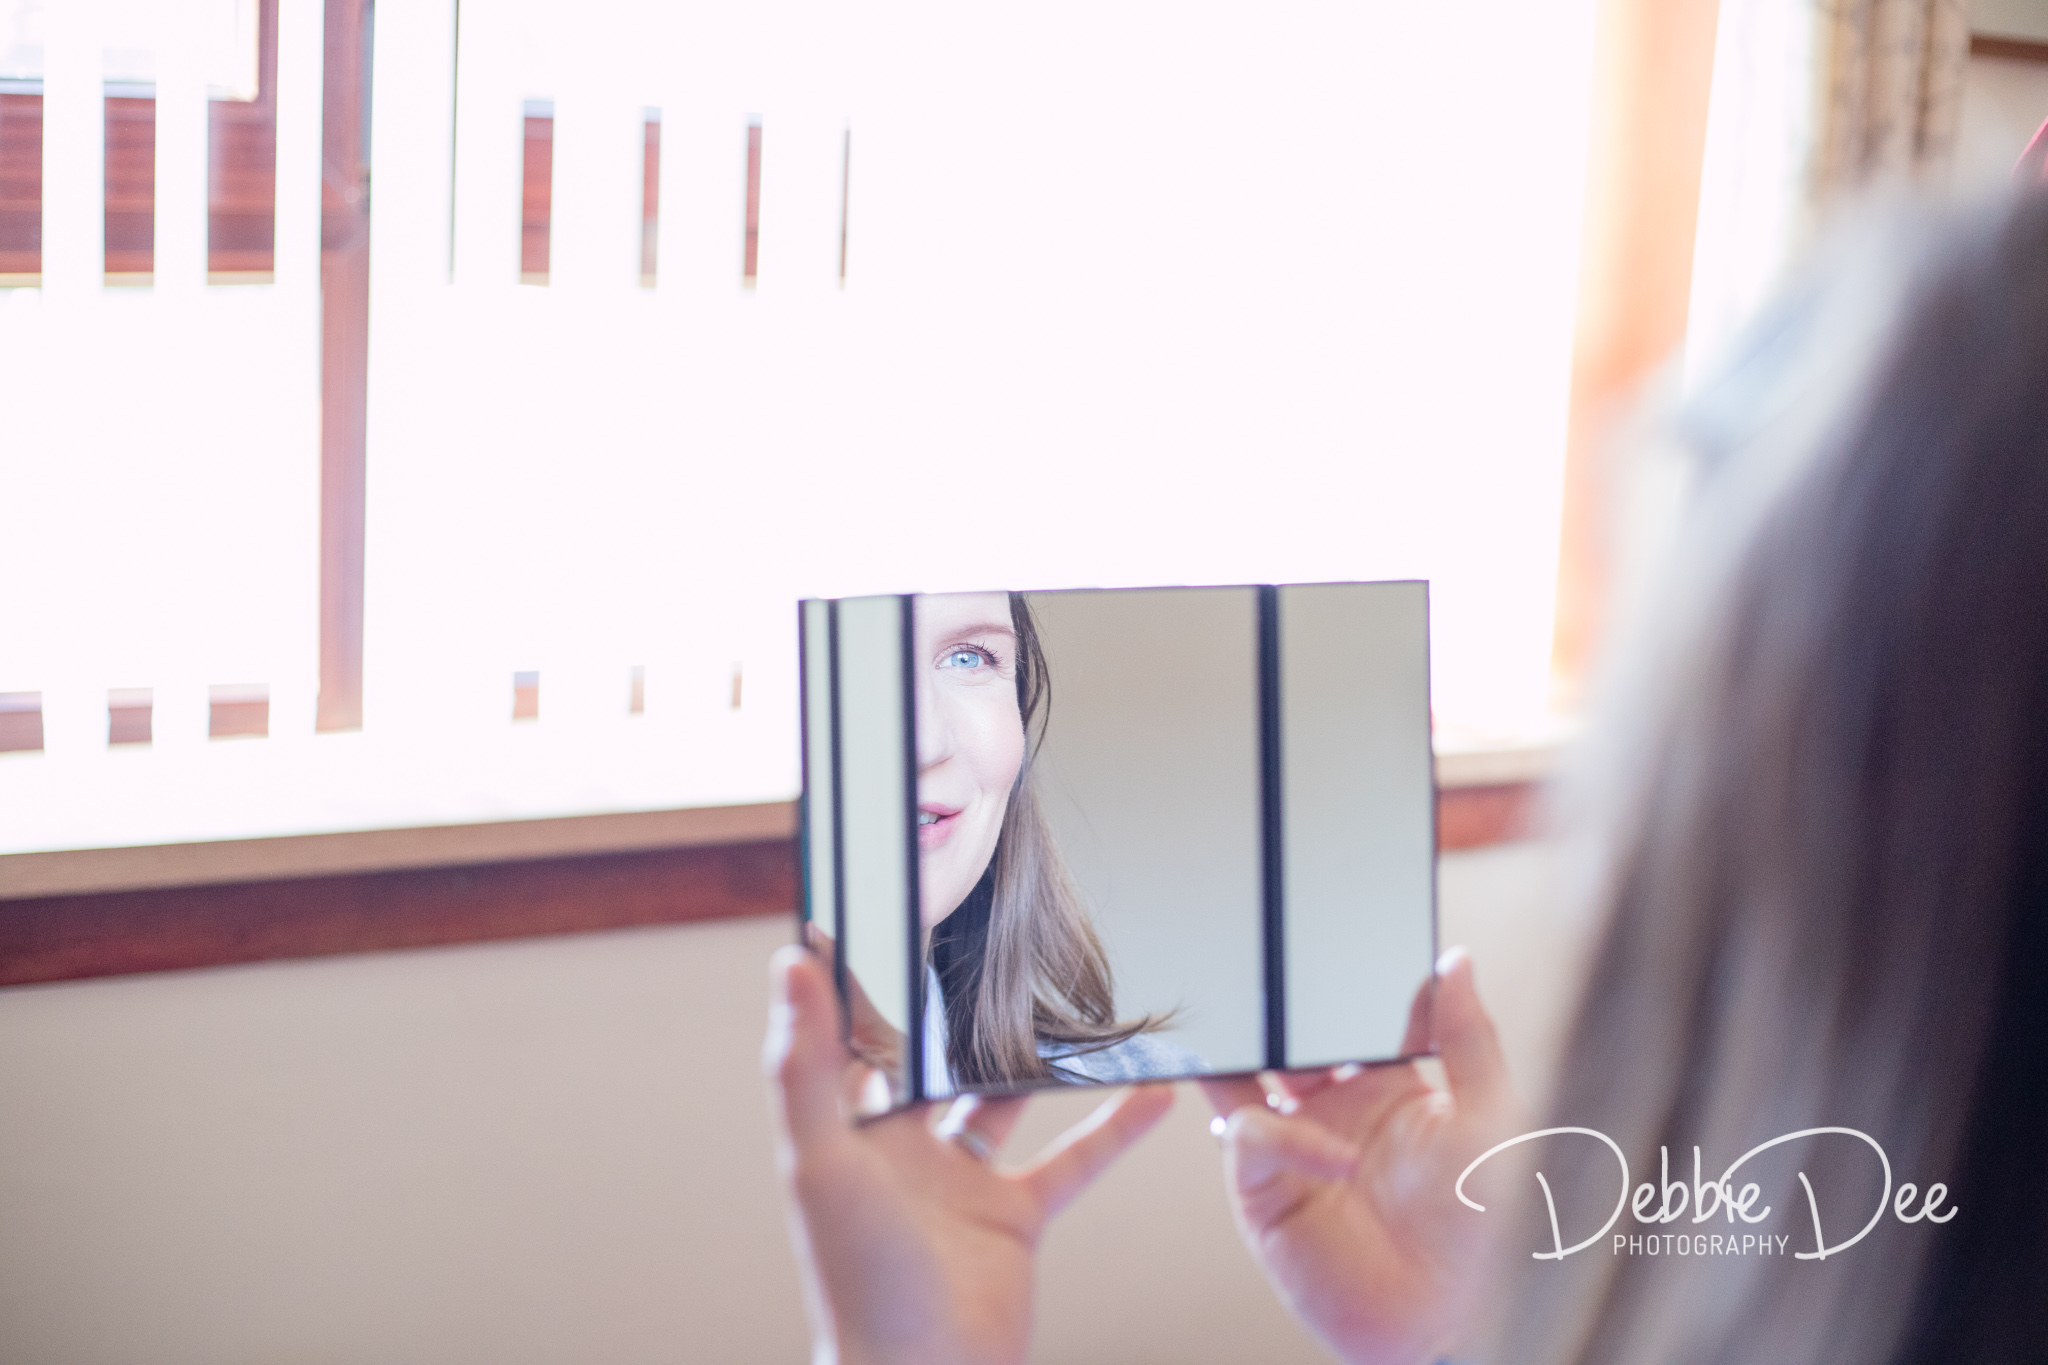 Aberdeenshire Maternity Photography Session - Make-up by Tiffany Dawson Make-Up Artistry - woman looking in mirror